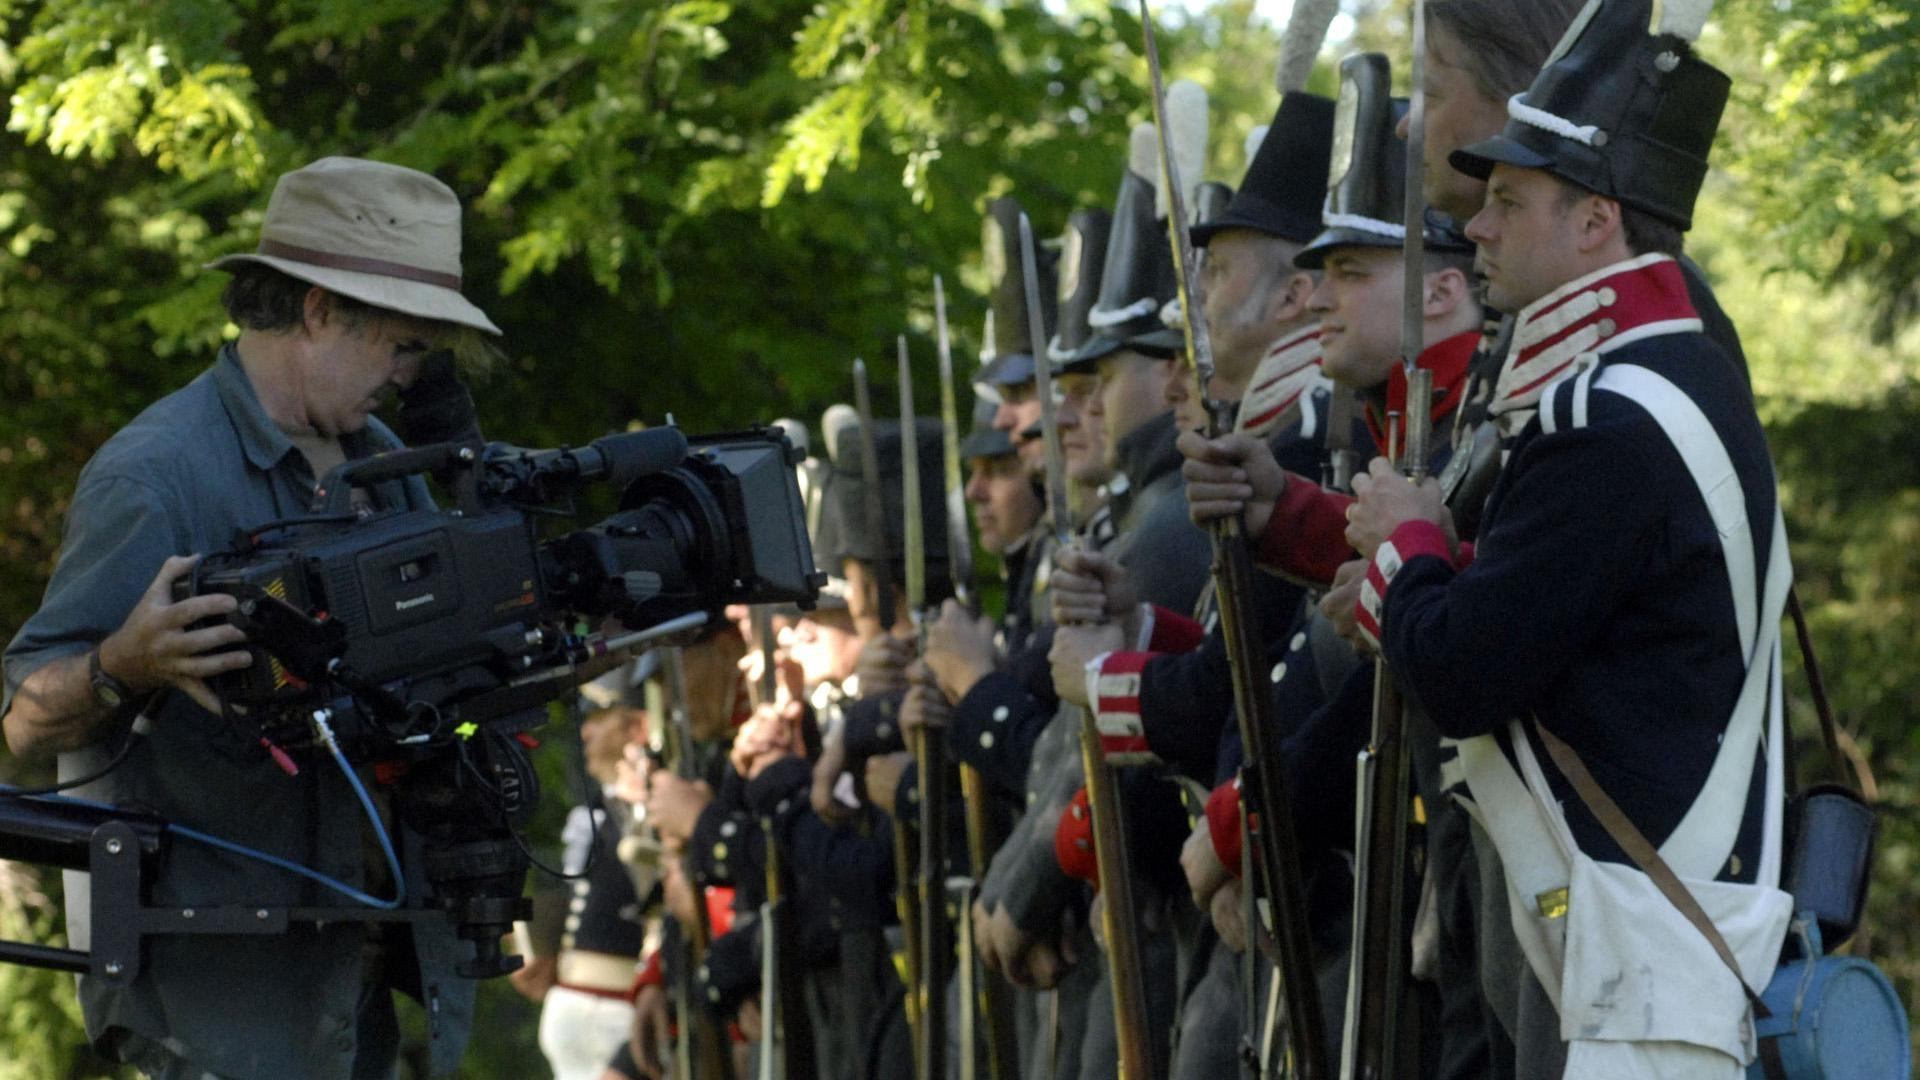 watch full episodes online of the war of 1812 on pbs